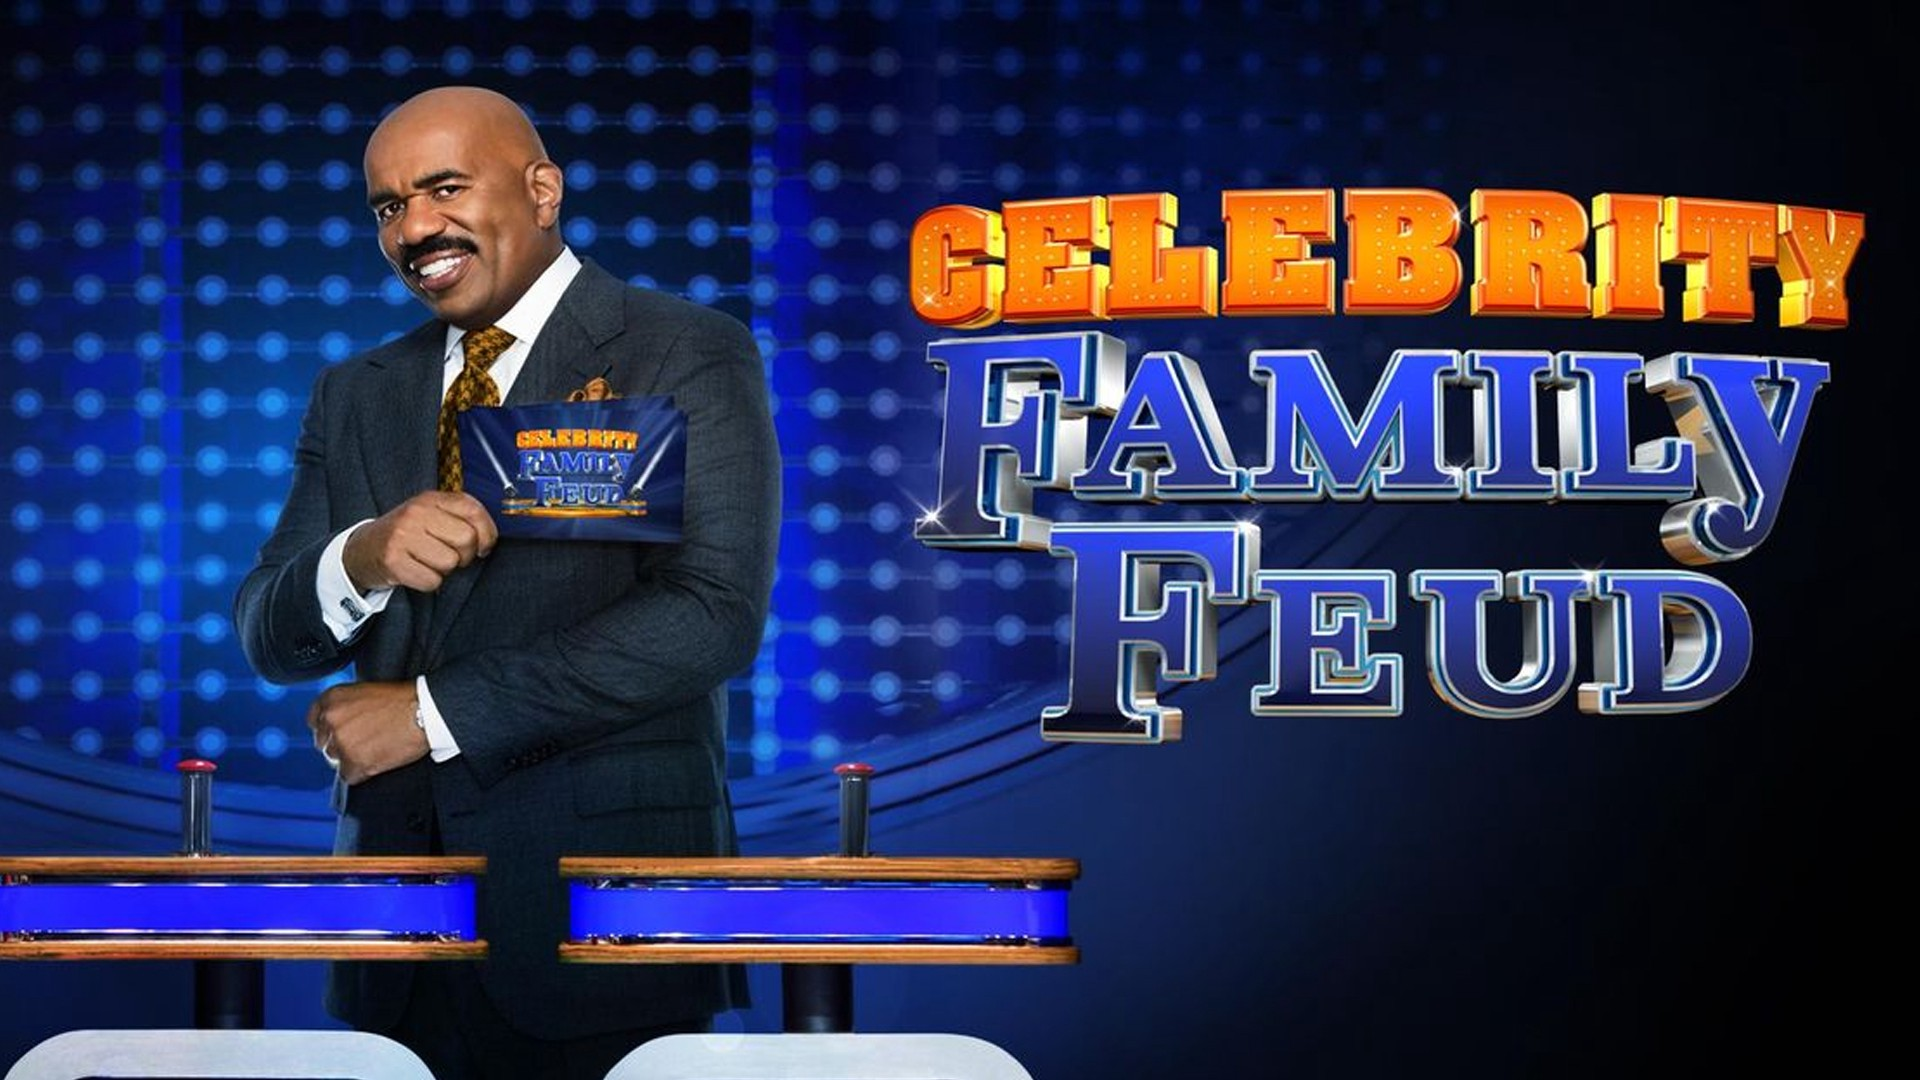 celebrity family feud full episodes online free